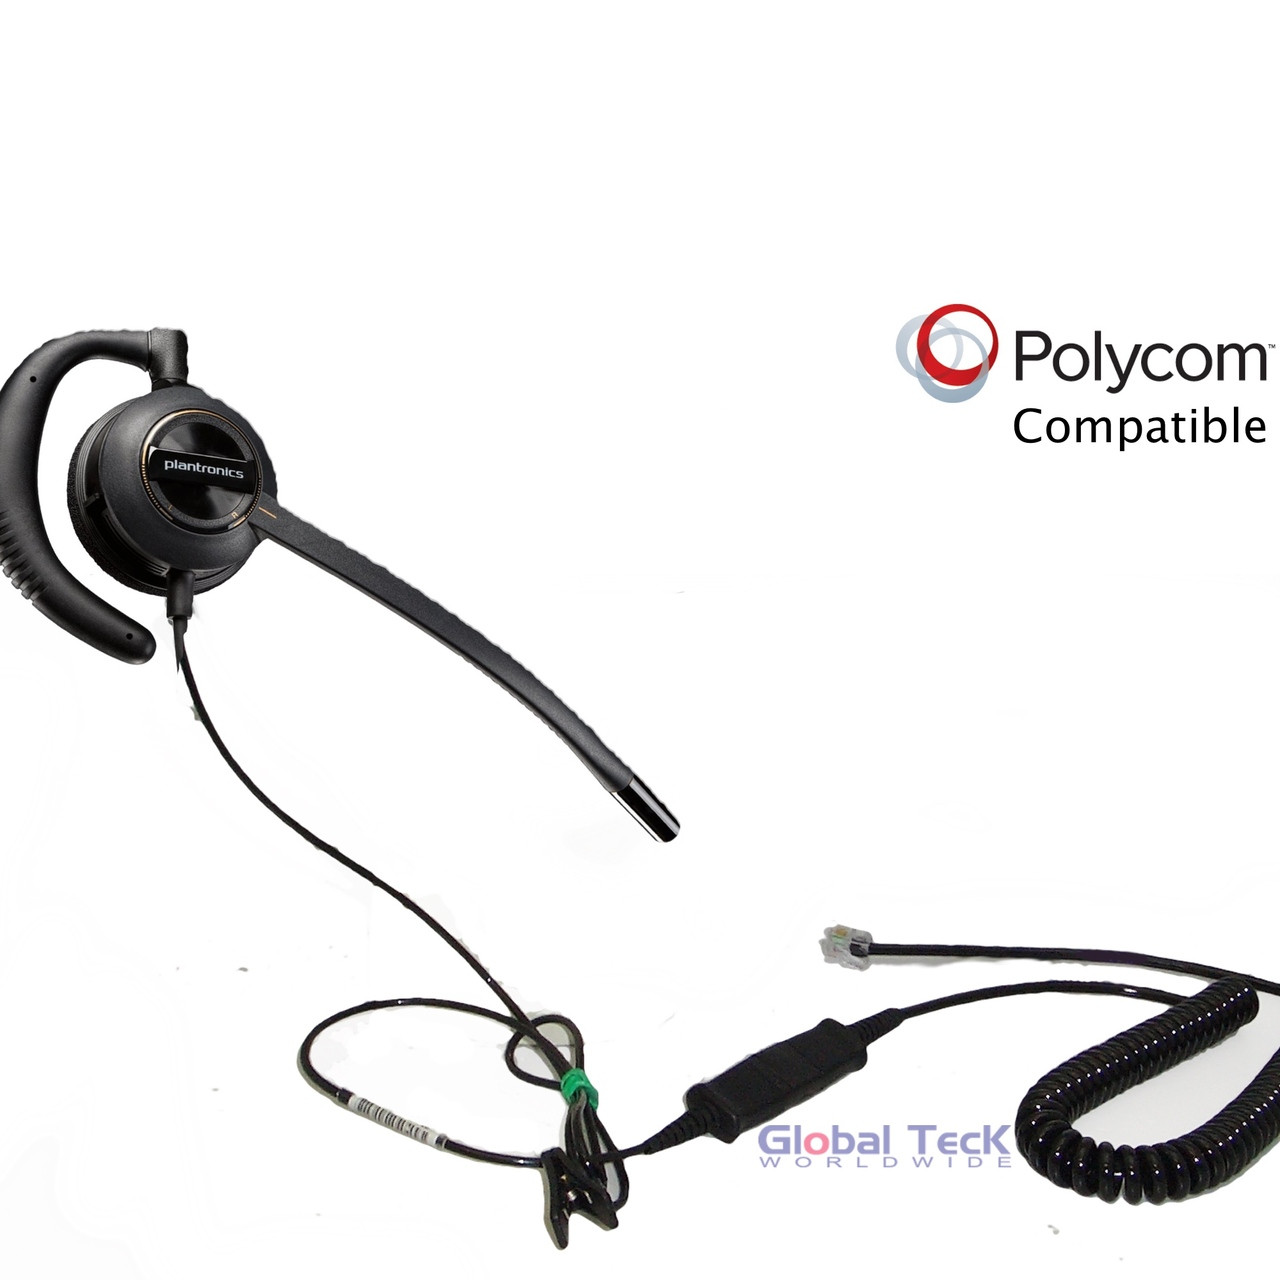 0a1bea91788eb5 Polycom Compatible Plantronics ENCOREPRO 530 (HW530) Direct Connect Headset  | SoundPoint       Phones: IP450, IP501, IP550, IP560, IP601, IP650, ...